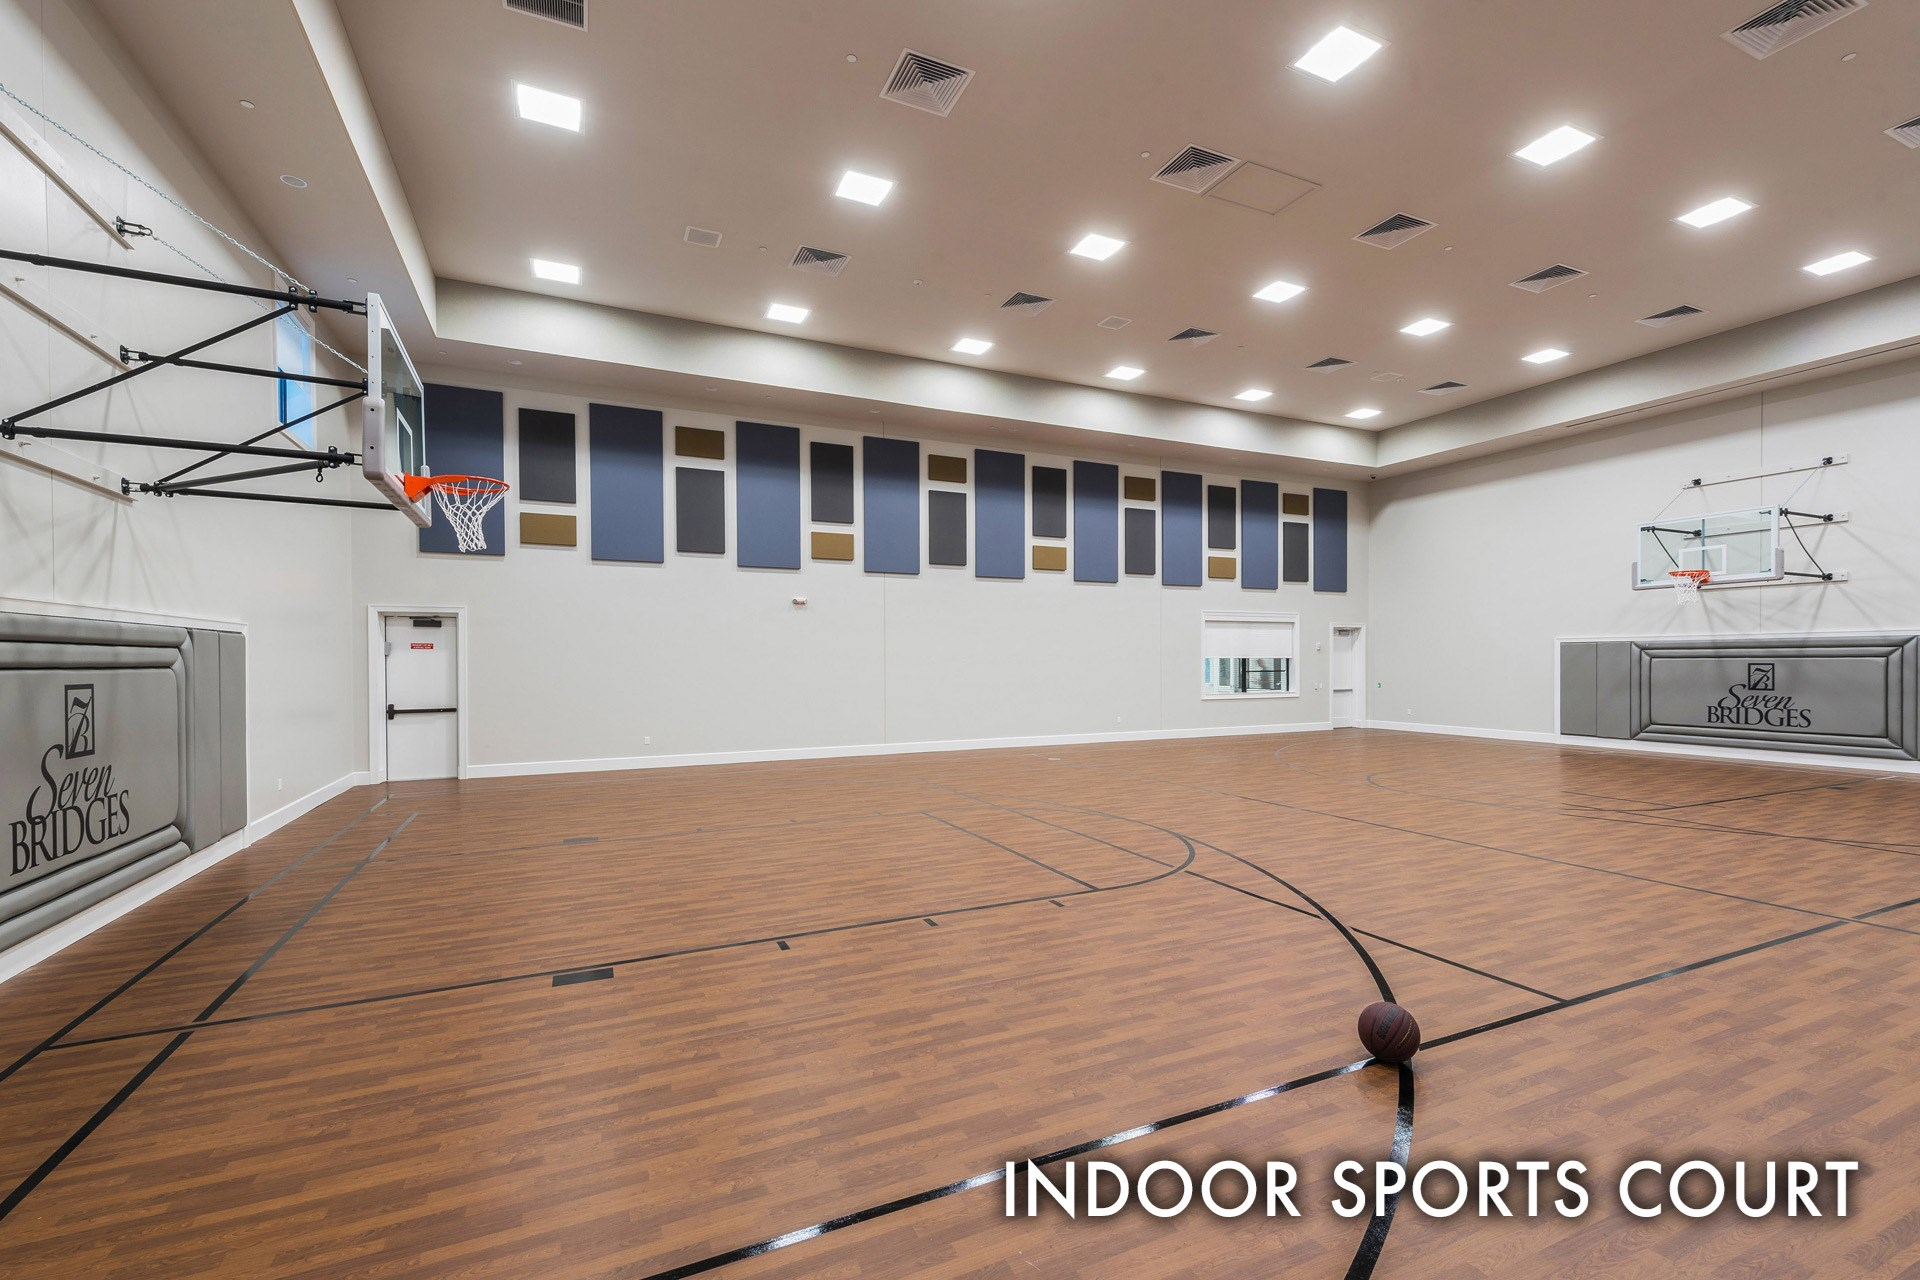 Boca Bridges BBR LS 3 2 sports court